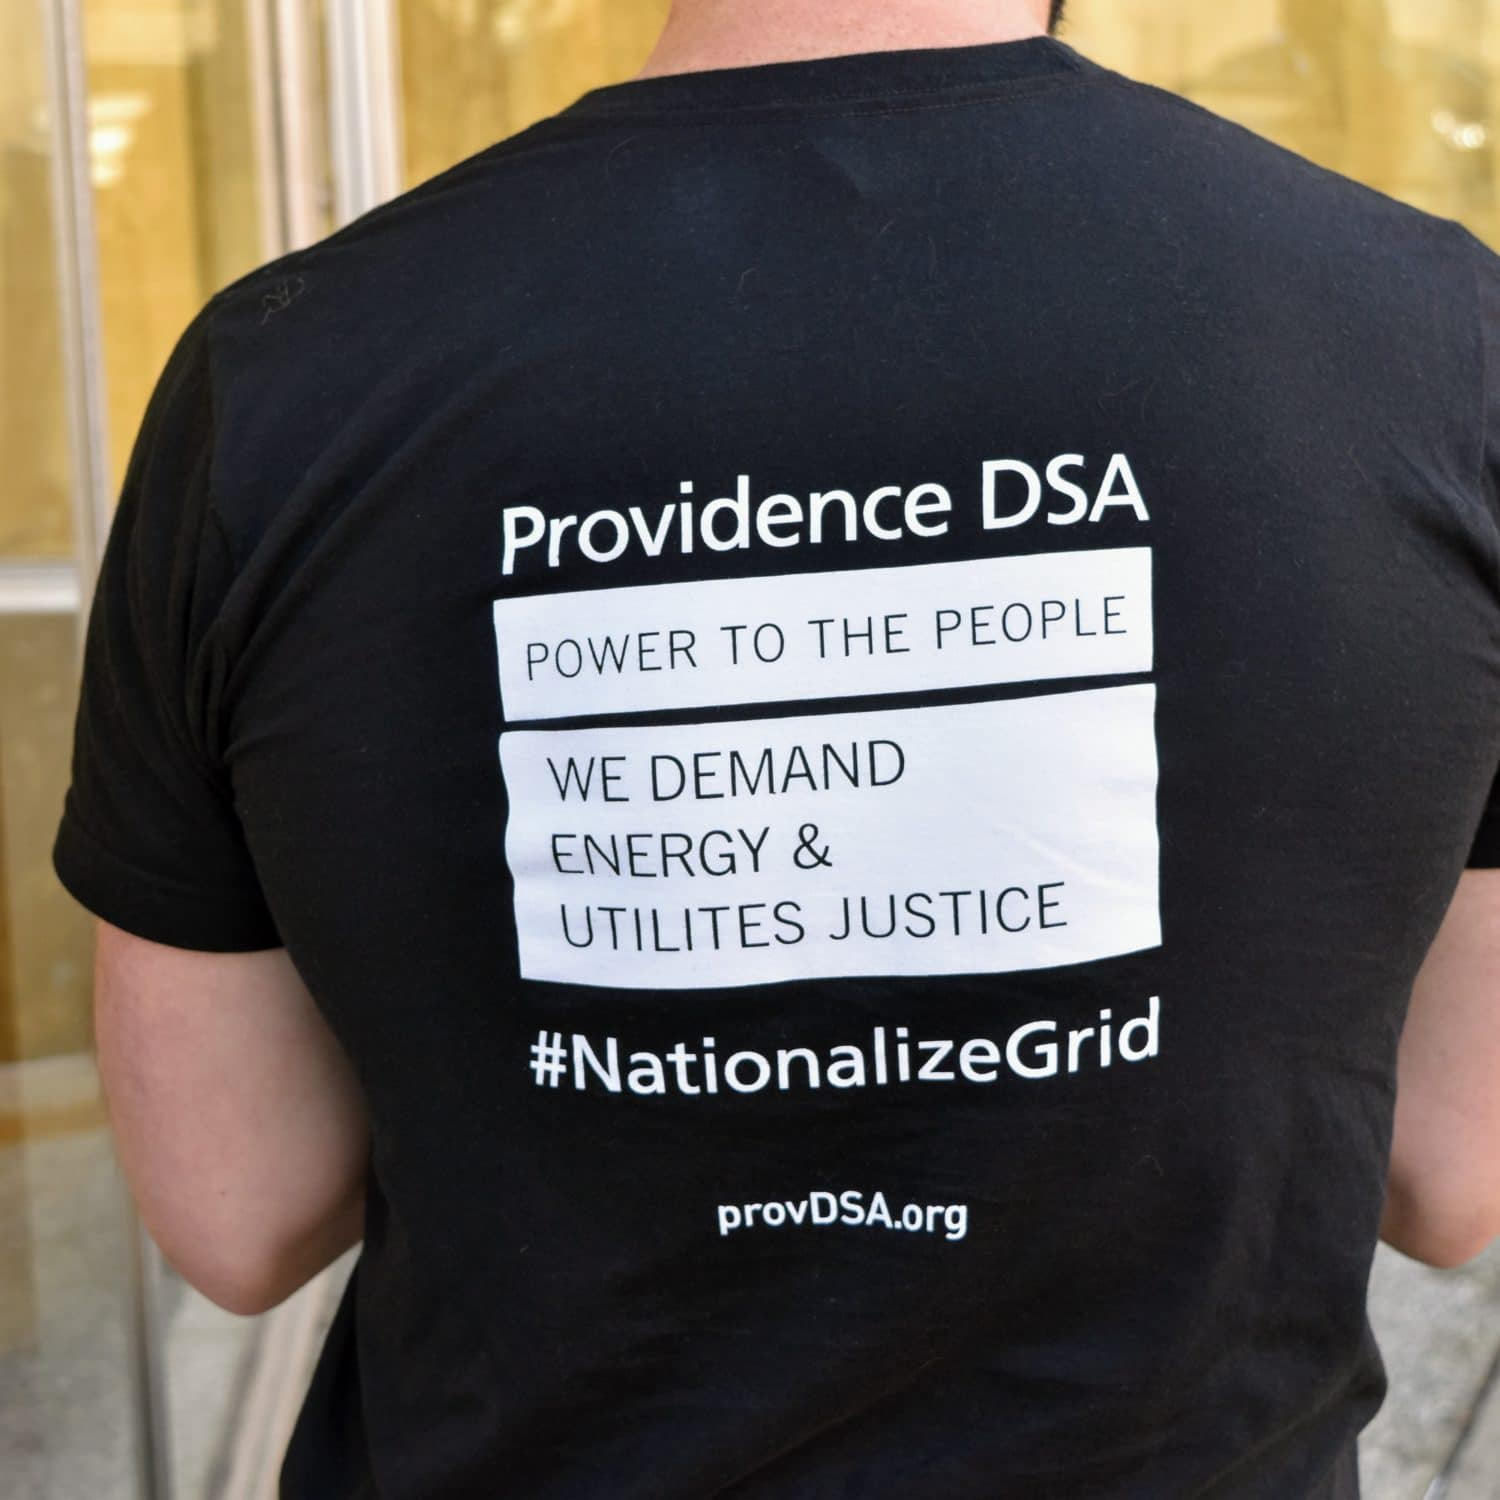 Photo for National Grid doesn't serve Rhode Island's interests, but there's an alternative